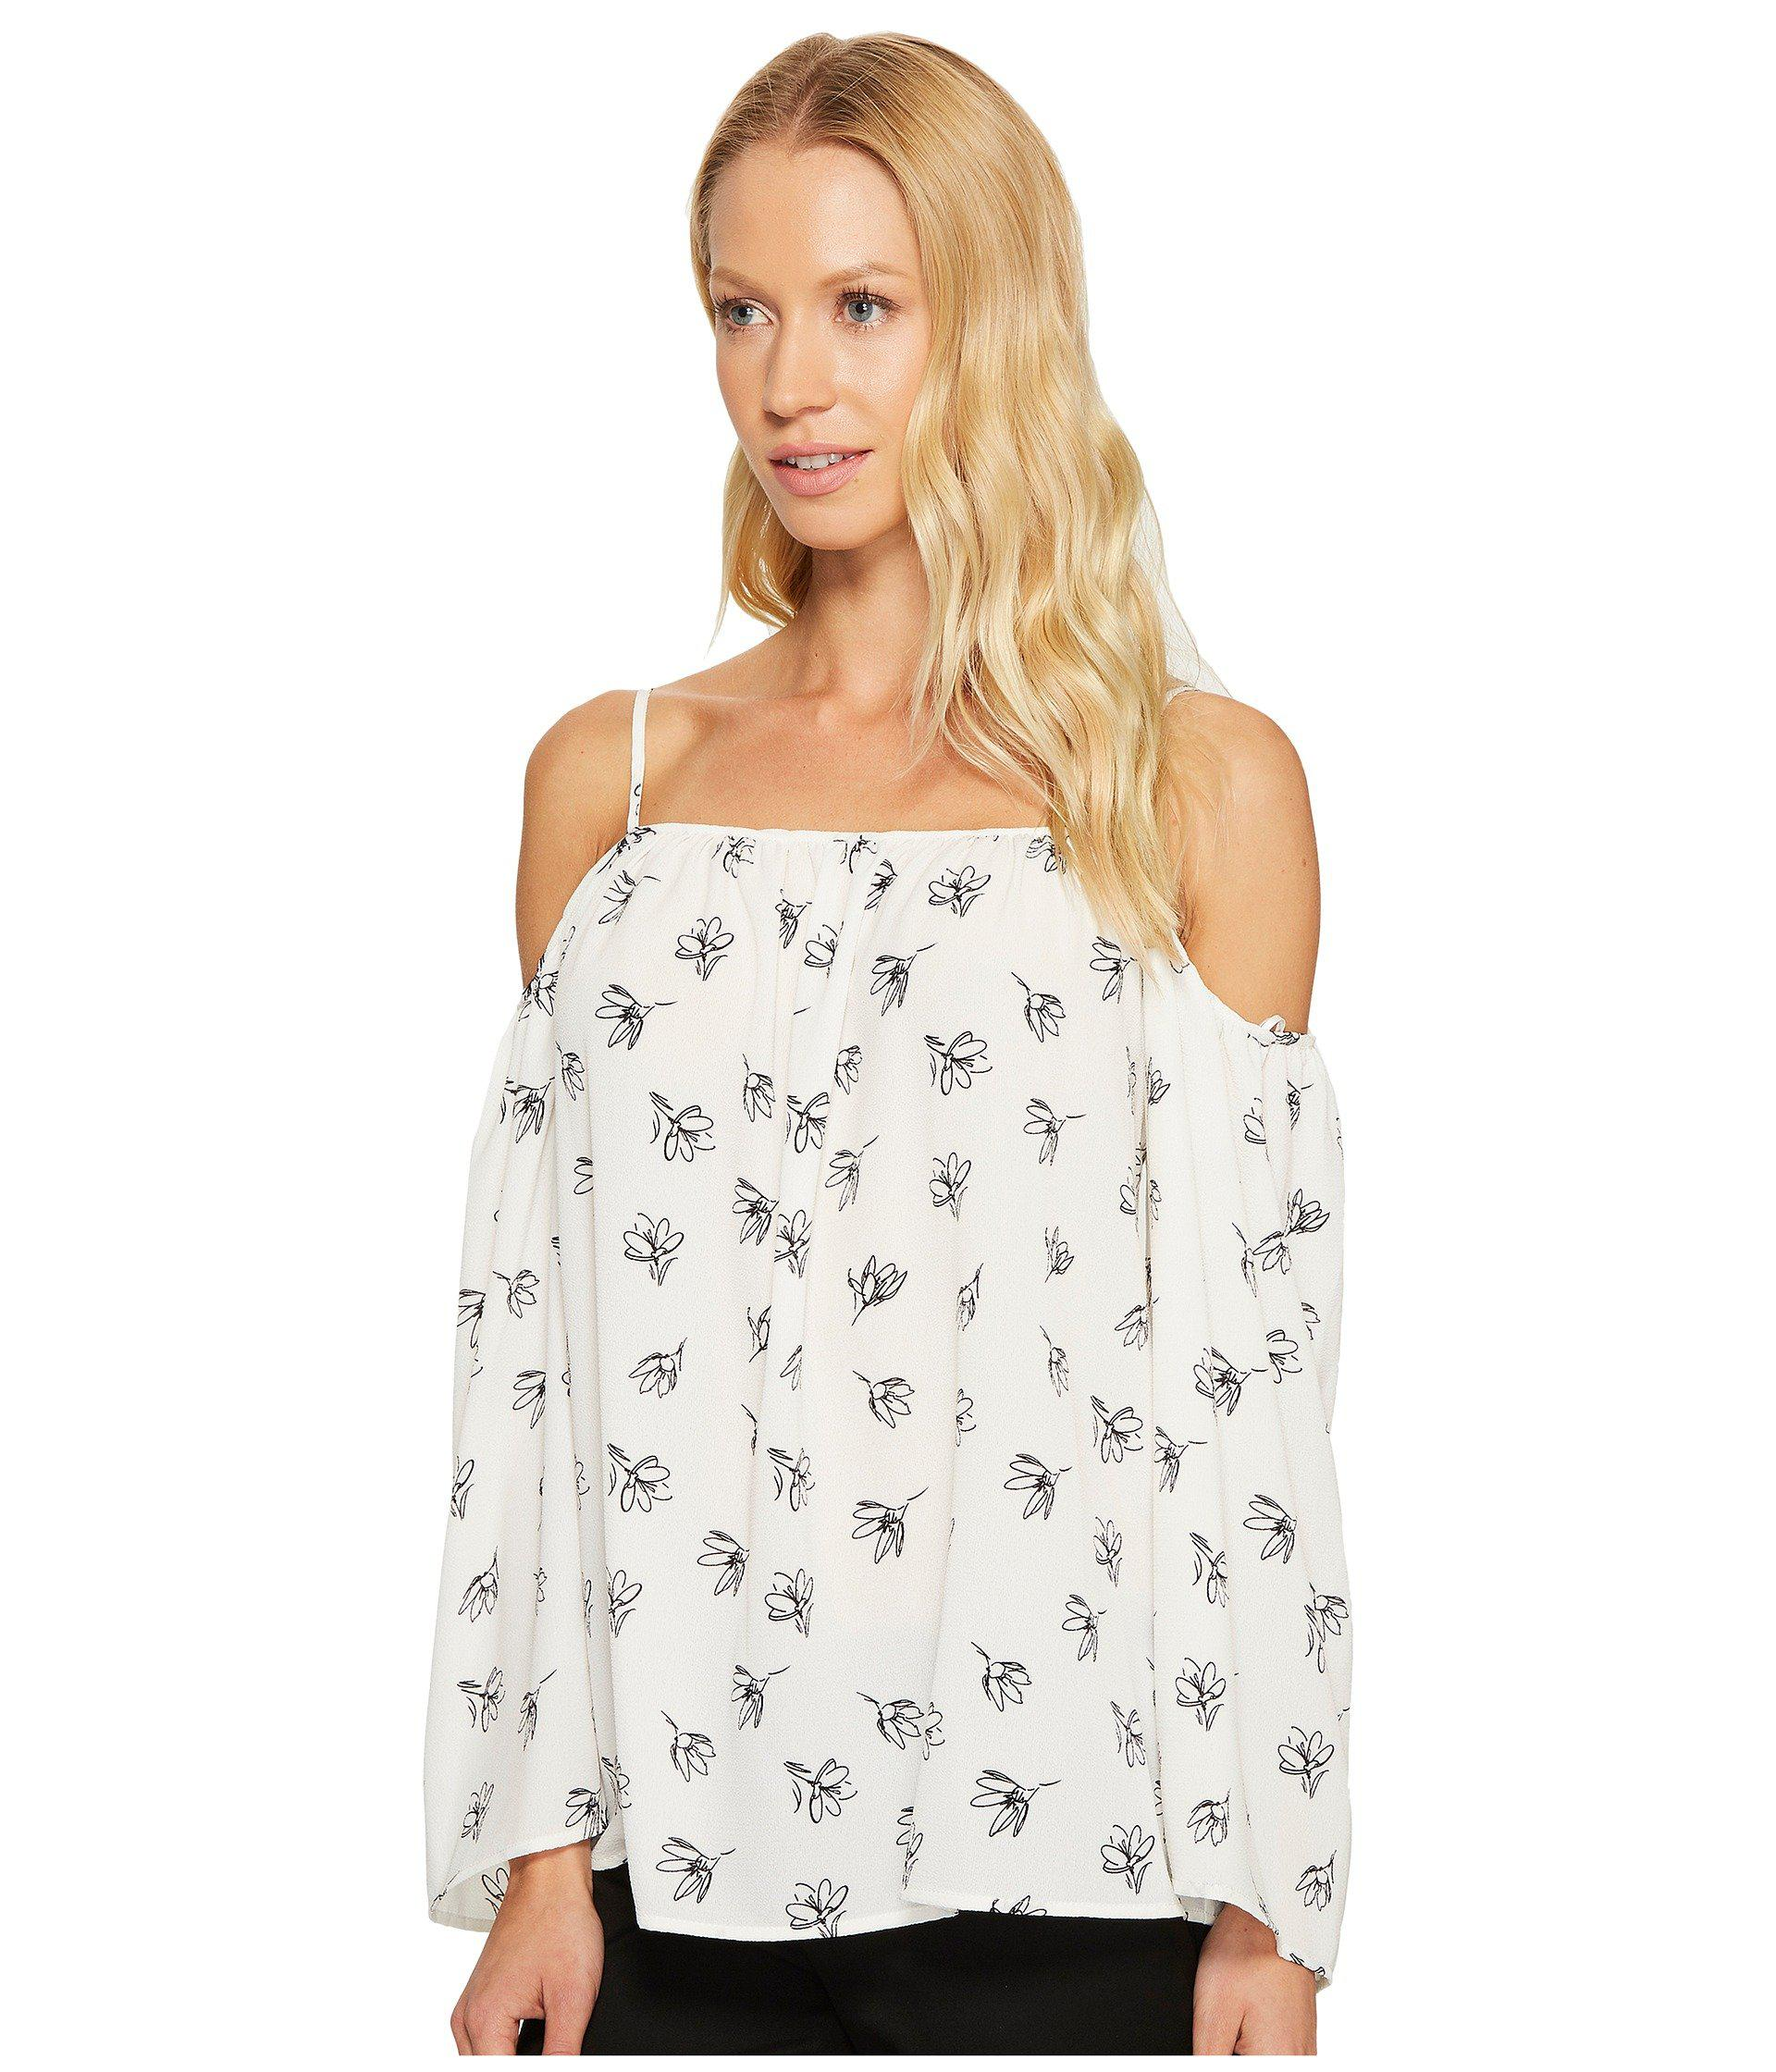 020353a534d78 Lyst - Vince Camuto Long Sleeve Fluent Flowers Cold-shoulder Blouse in  White - Save 61%